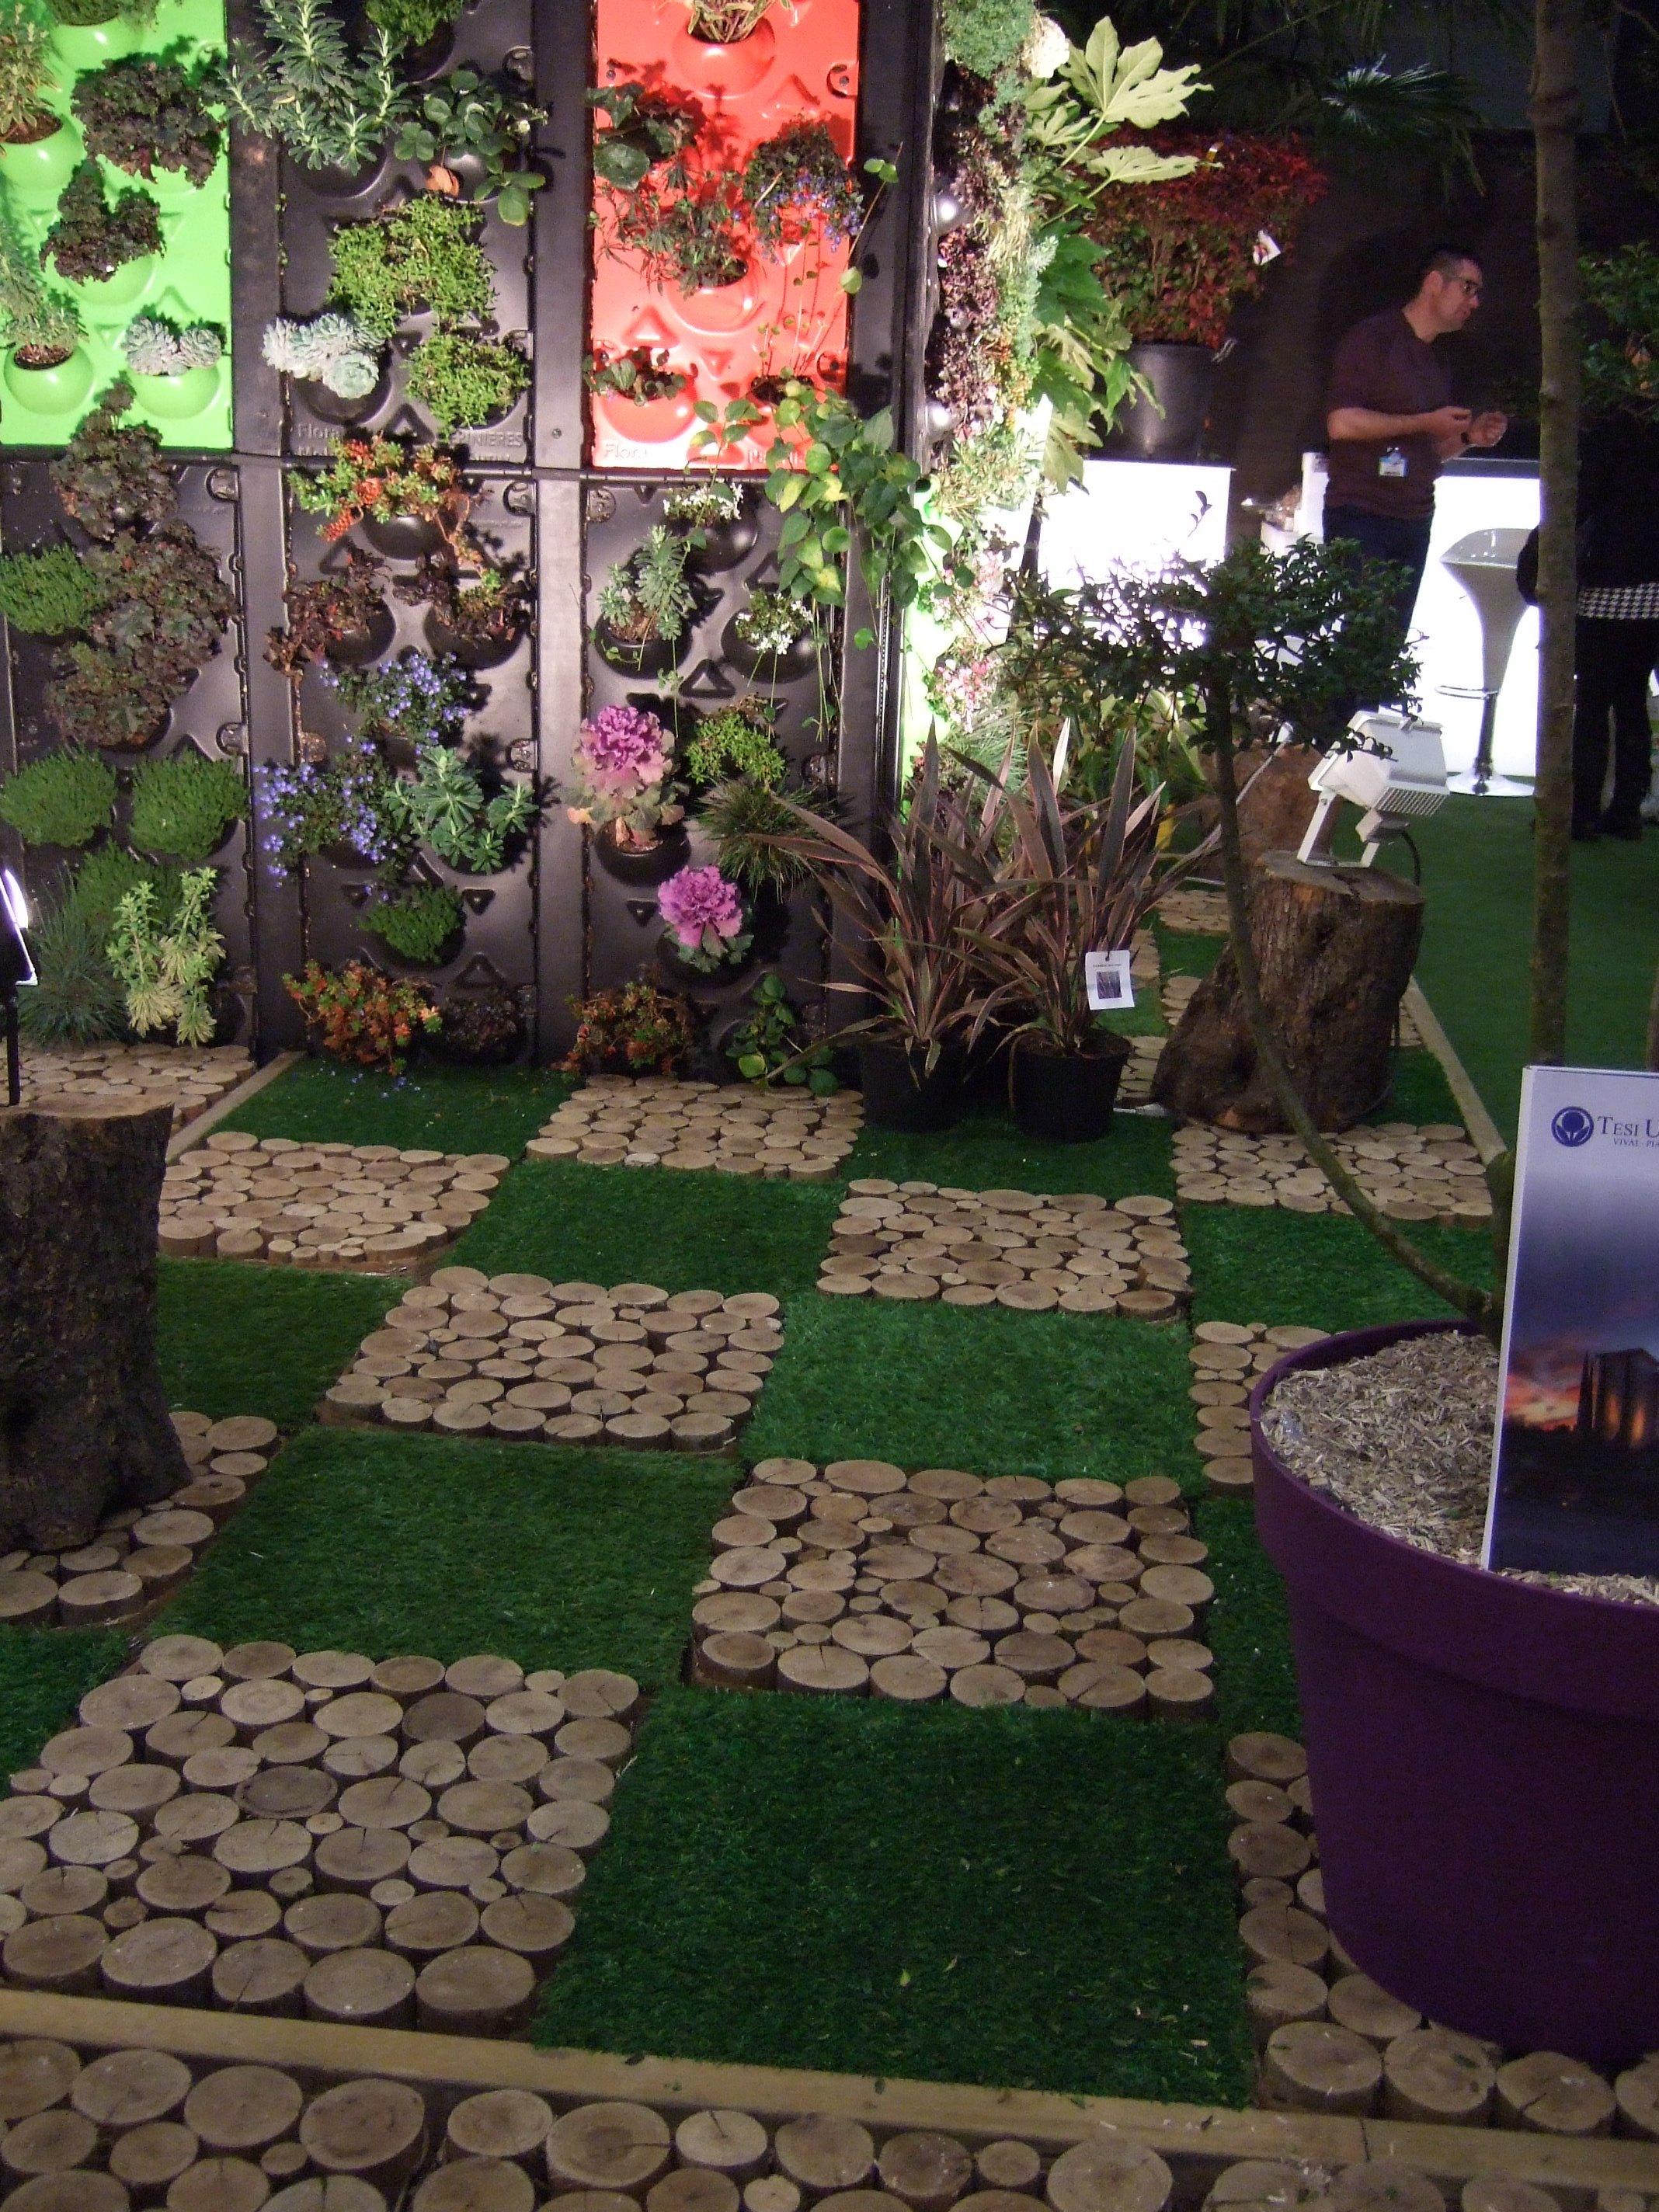 Le chesnoy les bac pro horti au salon du v g tal for Salon vegetal lyon